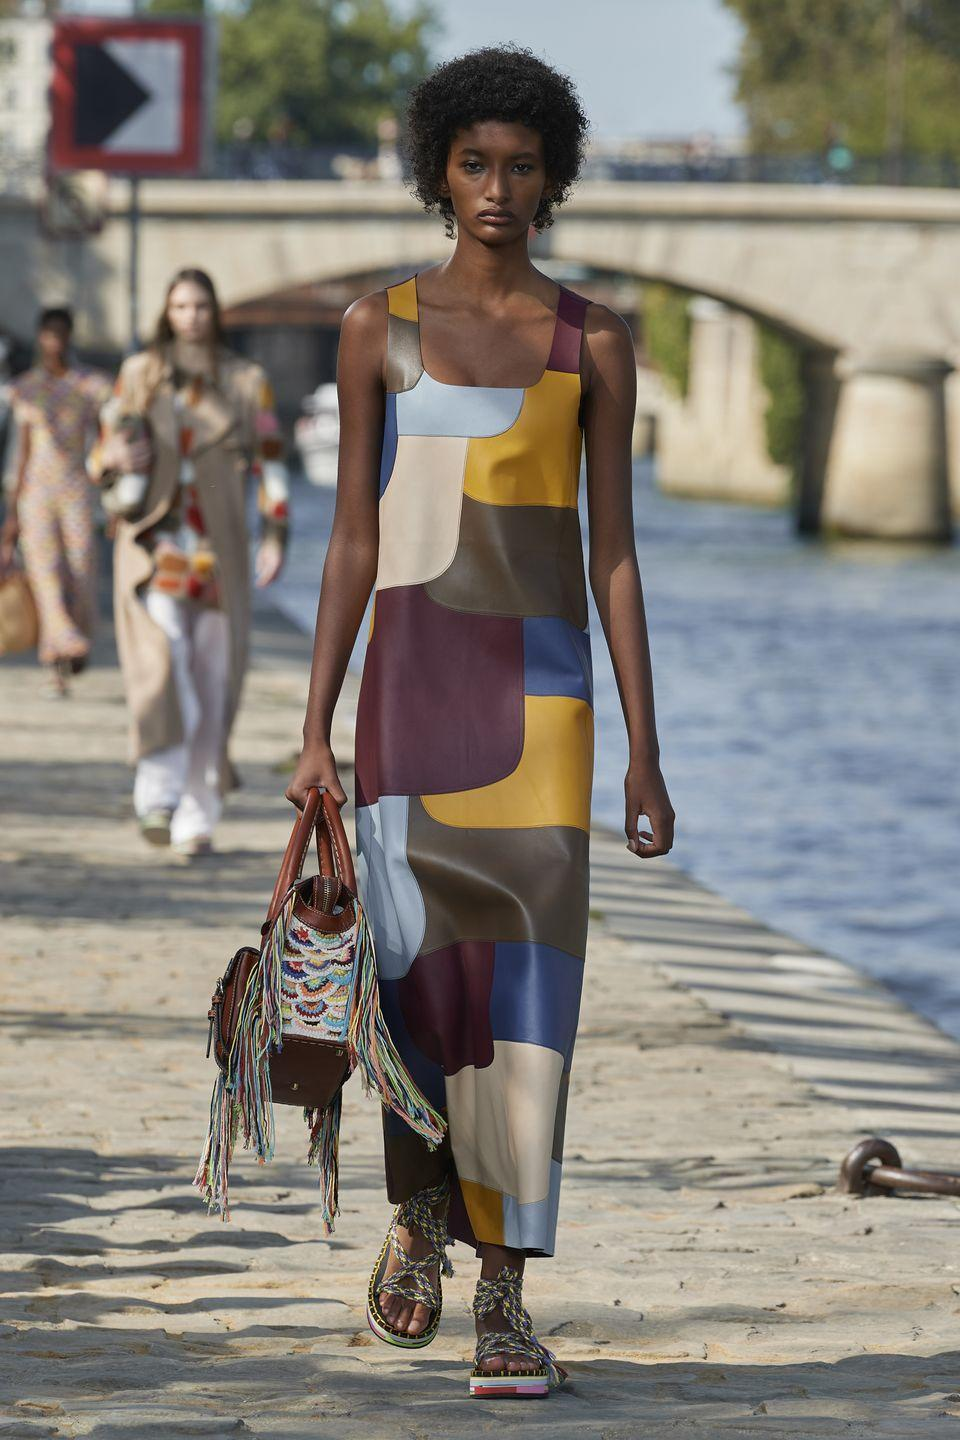 """<p>Leading the show notes for Chloé's spring/summer 2022 collection was a quote from Aldous Huxley about love.</p><p>""""Of all the worn, smudged, dog-eared words in our vocabulary, 'love' is surely the grubbiest, smelliest, slimiest. Bawled from a<br>million pulpits, lasciviously crooned through hundreds of millions of loudspeakers, it has become an outrage to good taste and decent<br>feeling, an obscenity which one hesitates to pronounce. And yet it has to be pronounced; for, after all, Love is the last word.""""</p><p>As well as the concept of love inspiring the collection was a celebration of craft, where it is expanding the number of our products handcrafted by independent artisans. </p><p>""""We are embossing all of these products with a signature spiral<br>symbol. Chloé Craft seeks to pioneer new levels of traceability and transparency in the industry and establish a deeper connection between consumers and local producers. These techniques cannot be mimicked by machinery, only mastered by the human hand.""""</p>"""